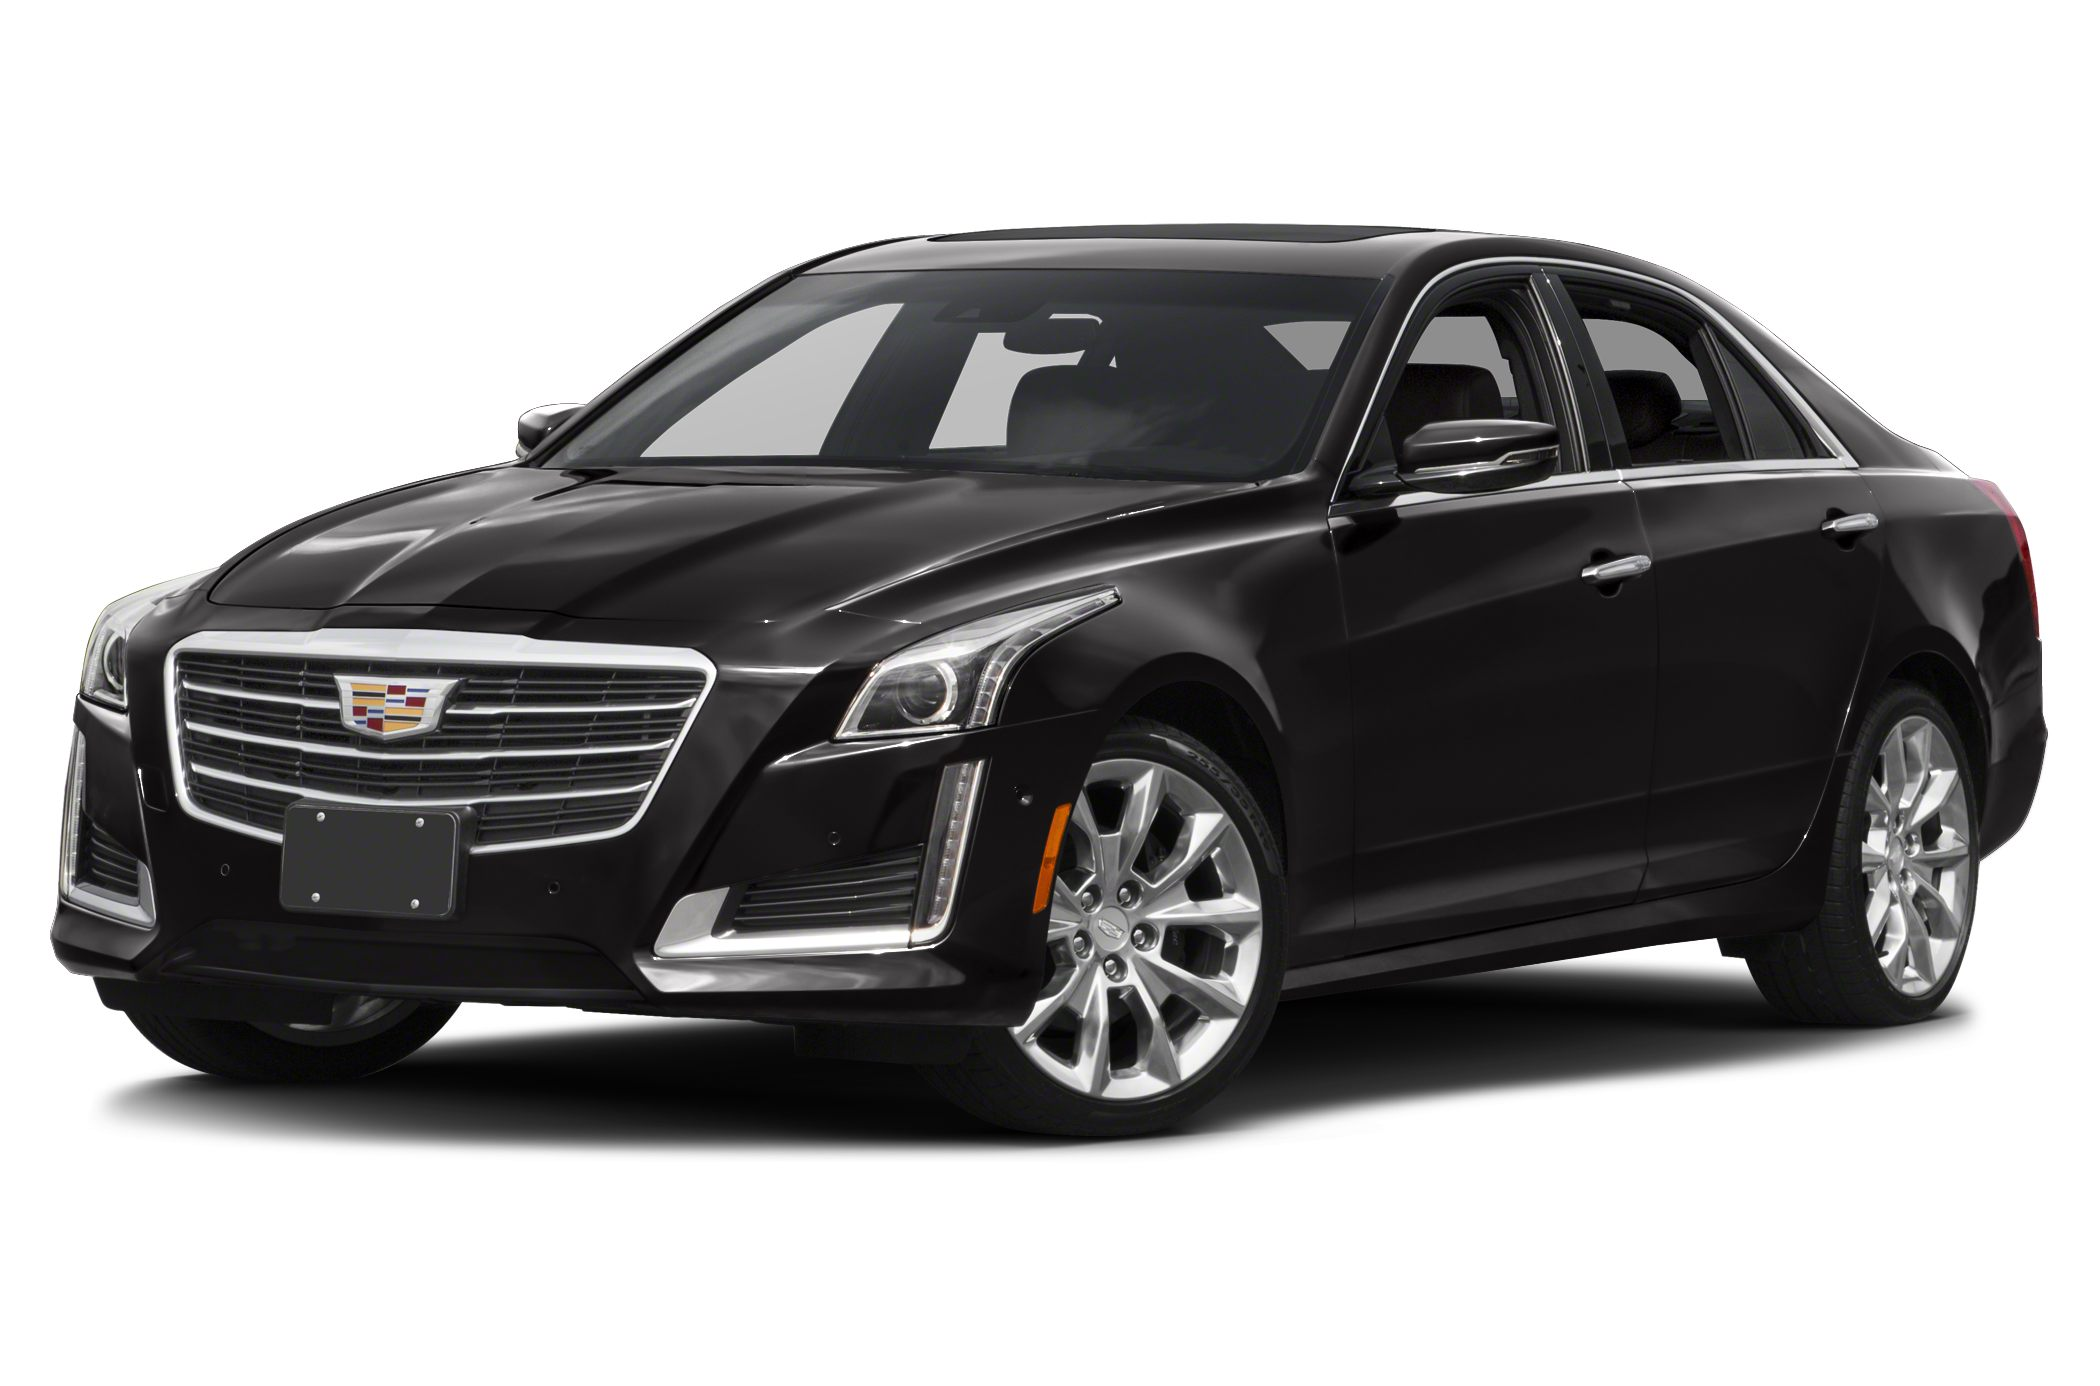 3 6l Performance Collection 4dr All Wheel Drive Sedan 2016 Cadillac Cts Photos